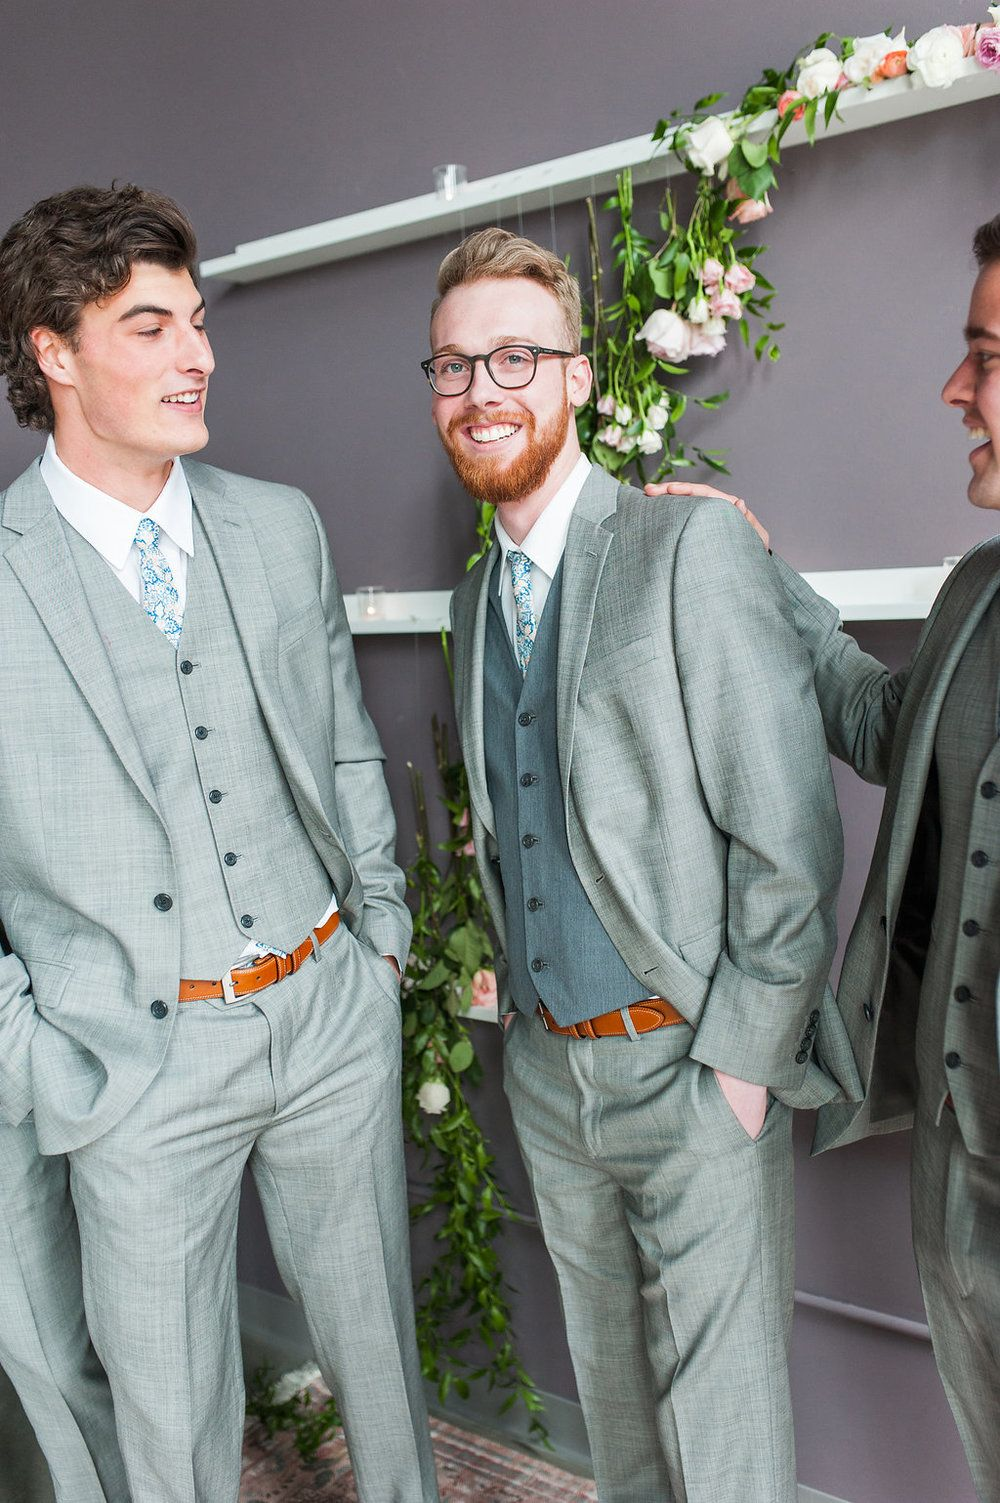 Groomsmen picture ideas, grey suit, patterned tie ideas, floral ...